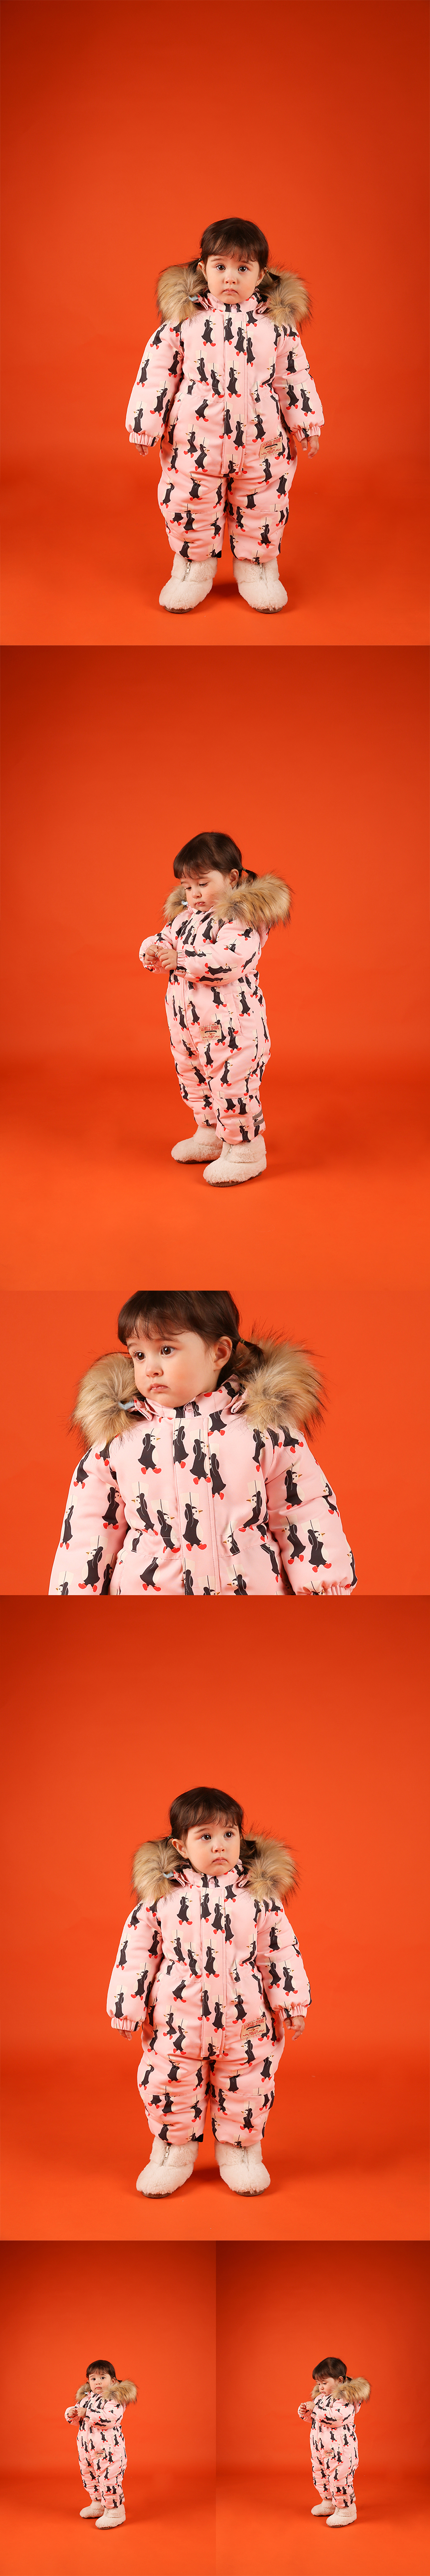 Multi penguin baby ski suit 상세 이미지